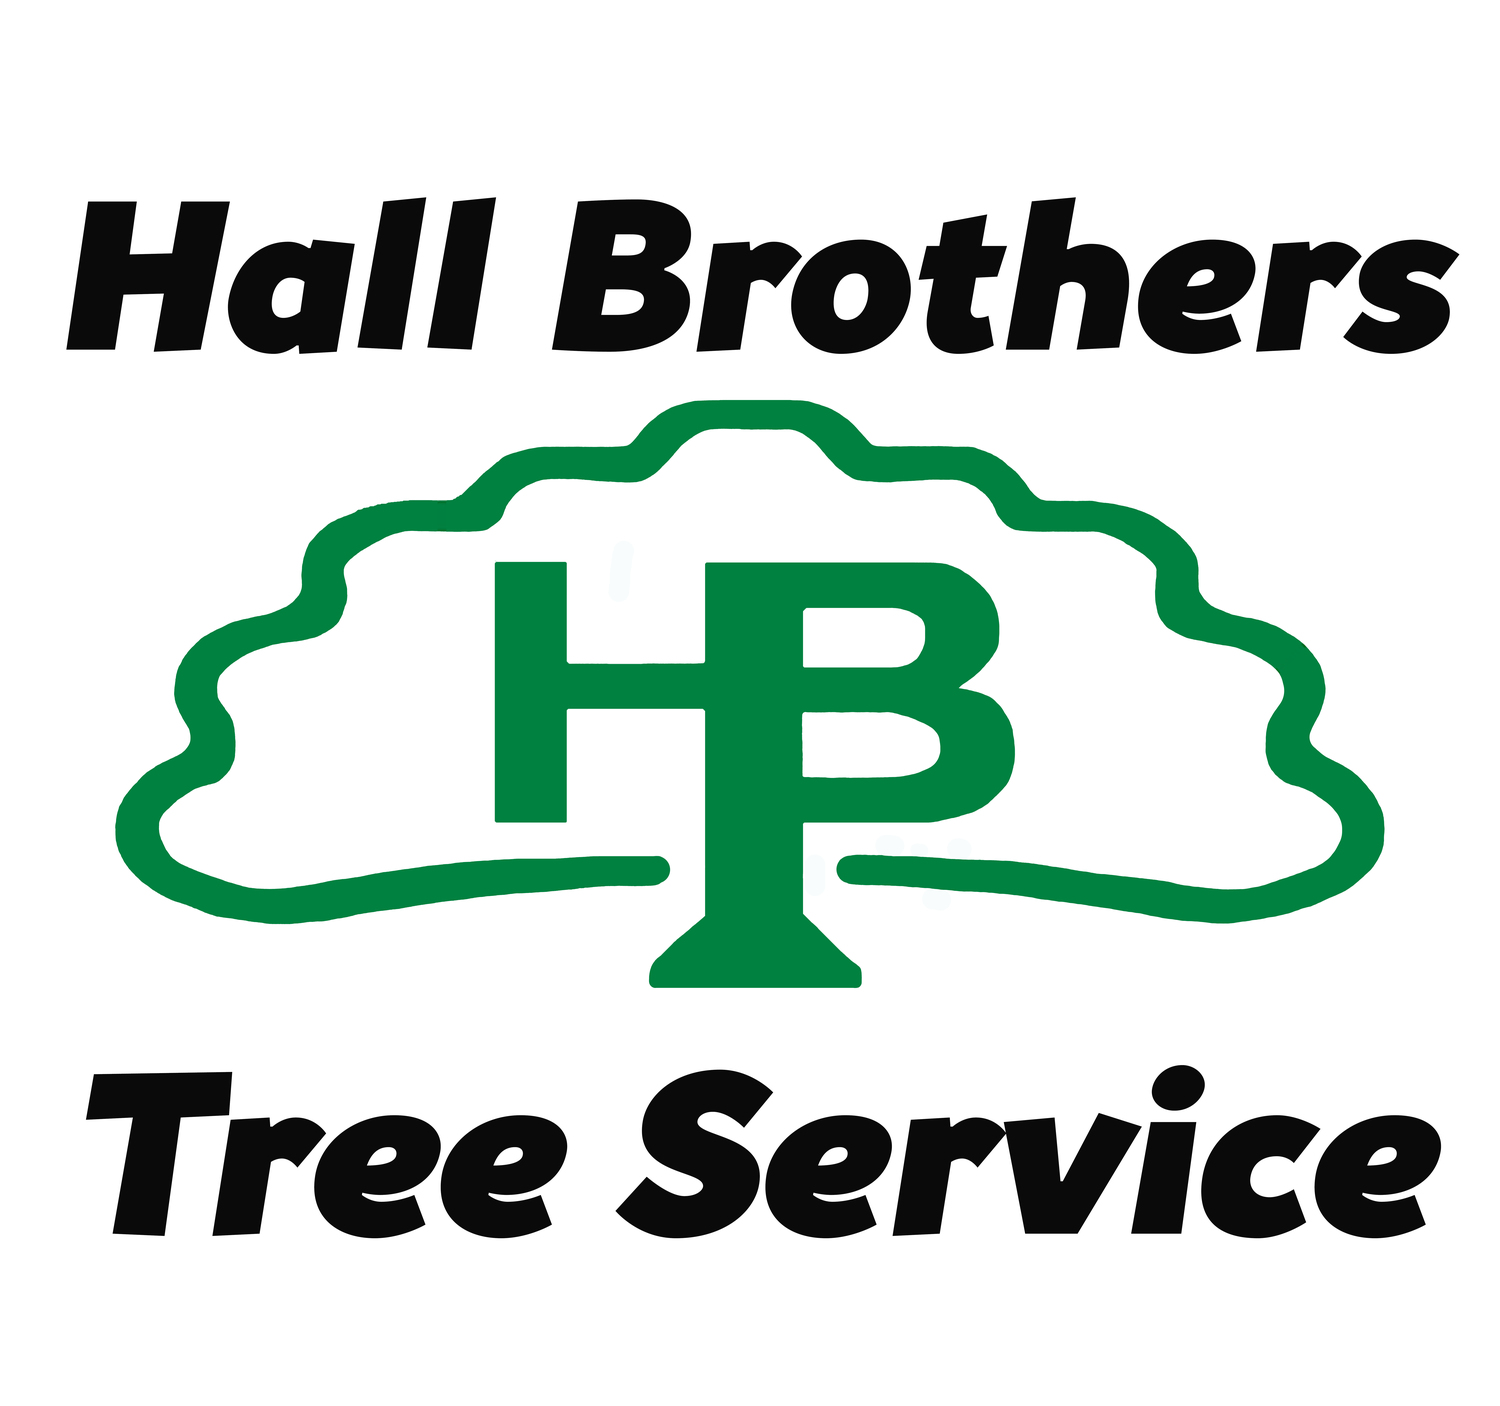 Hall Brothers Tree Service